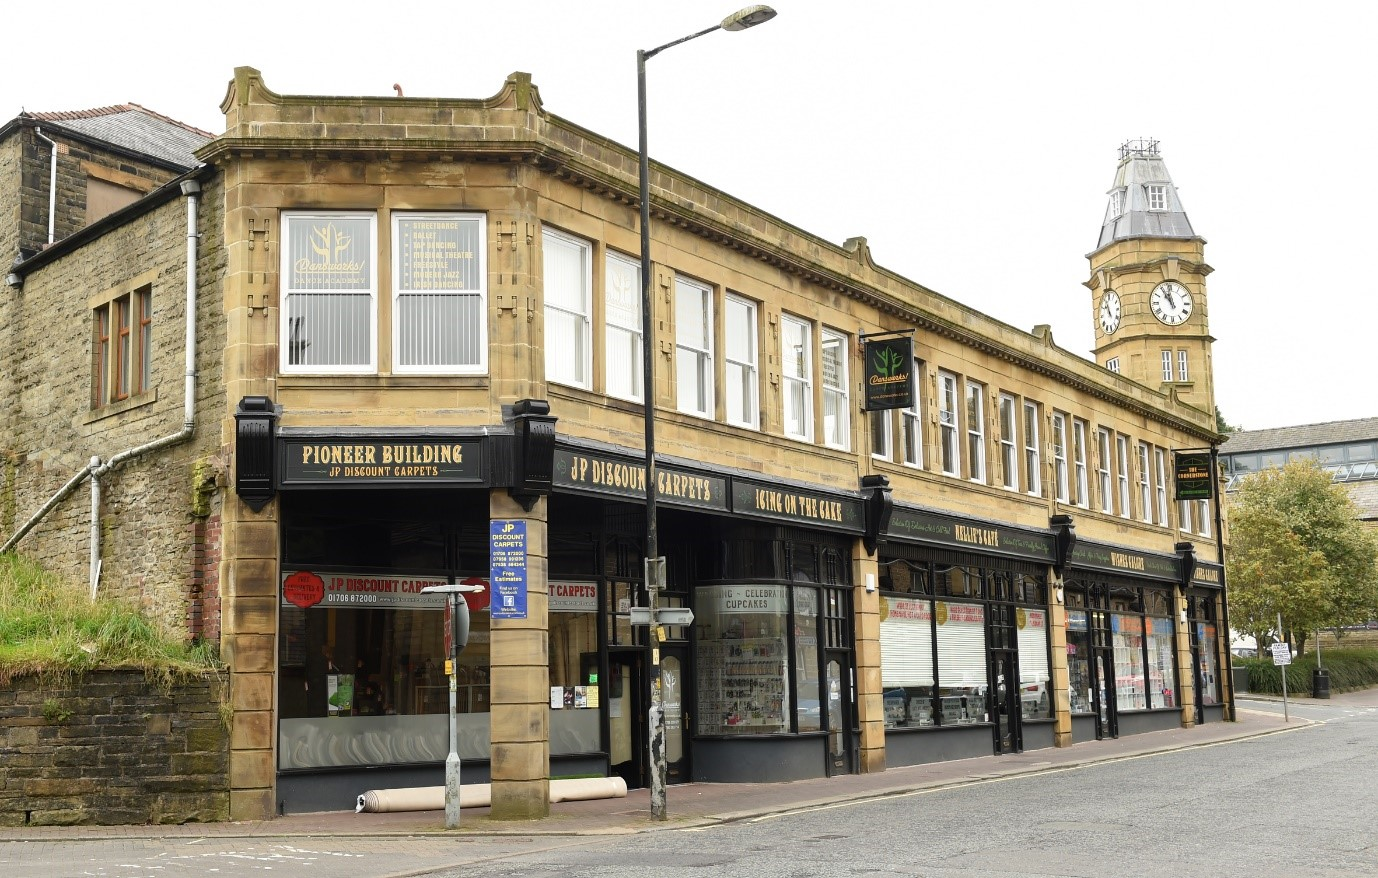 Image of the Pioneer Building in Bacup shops and markets in Rossendale for Visit Rossendale website